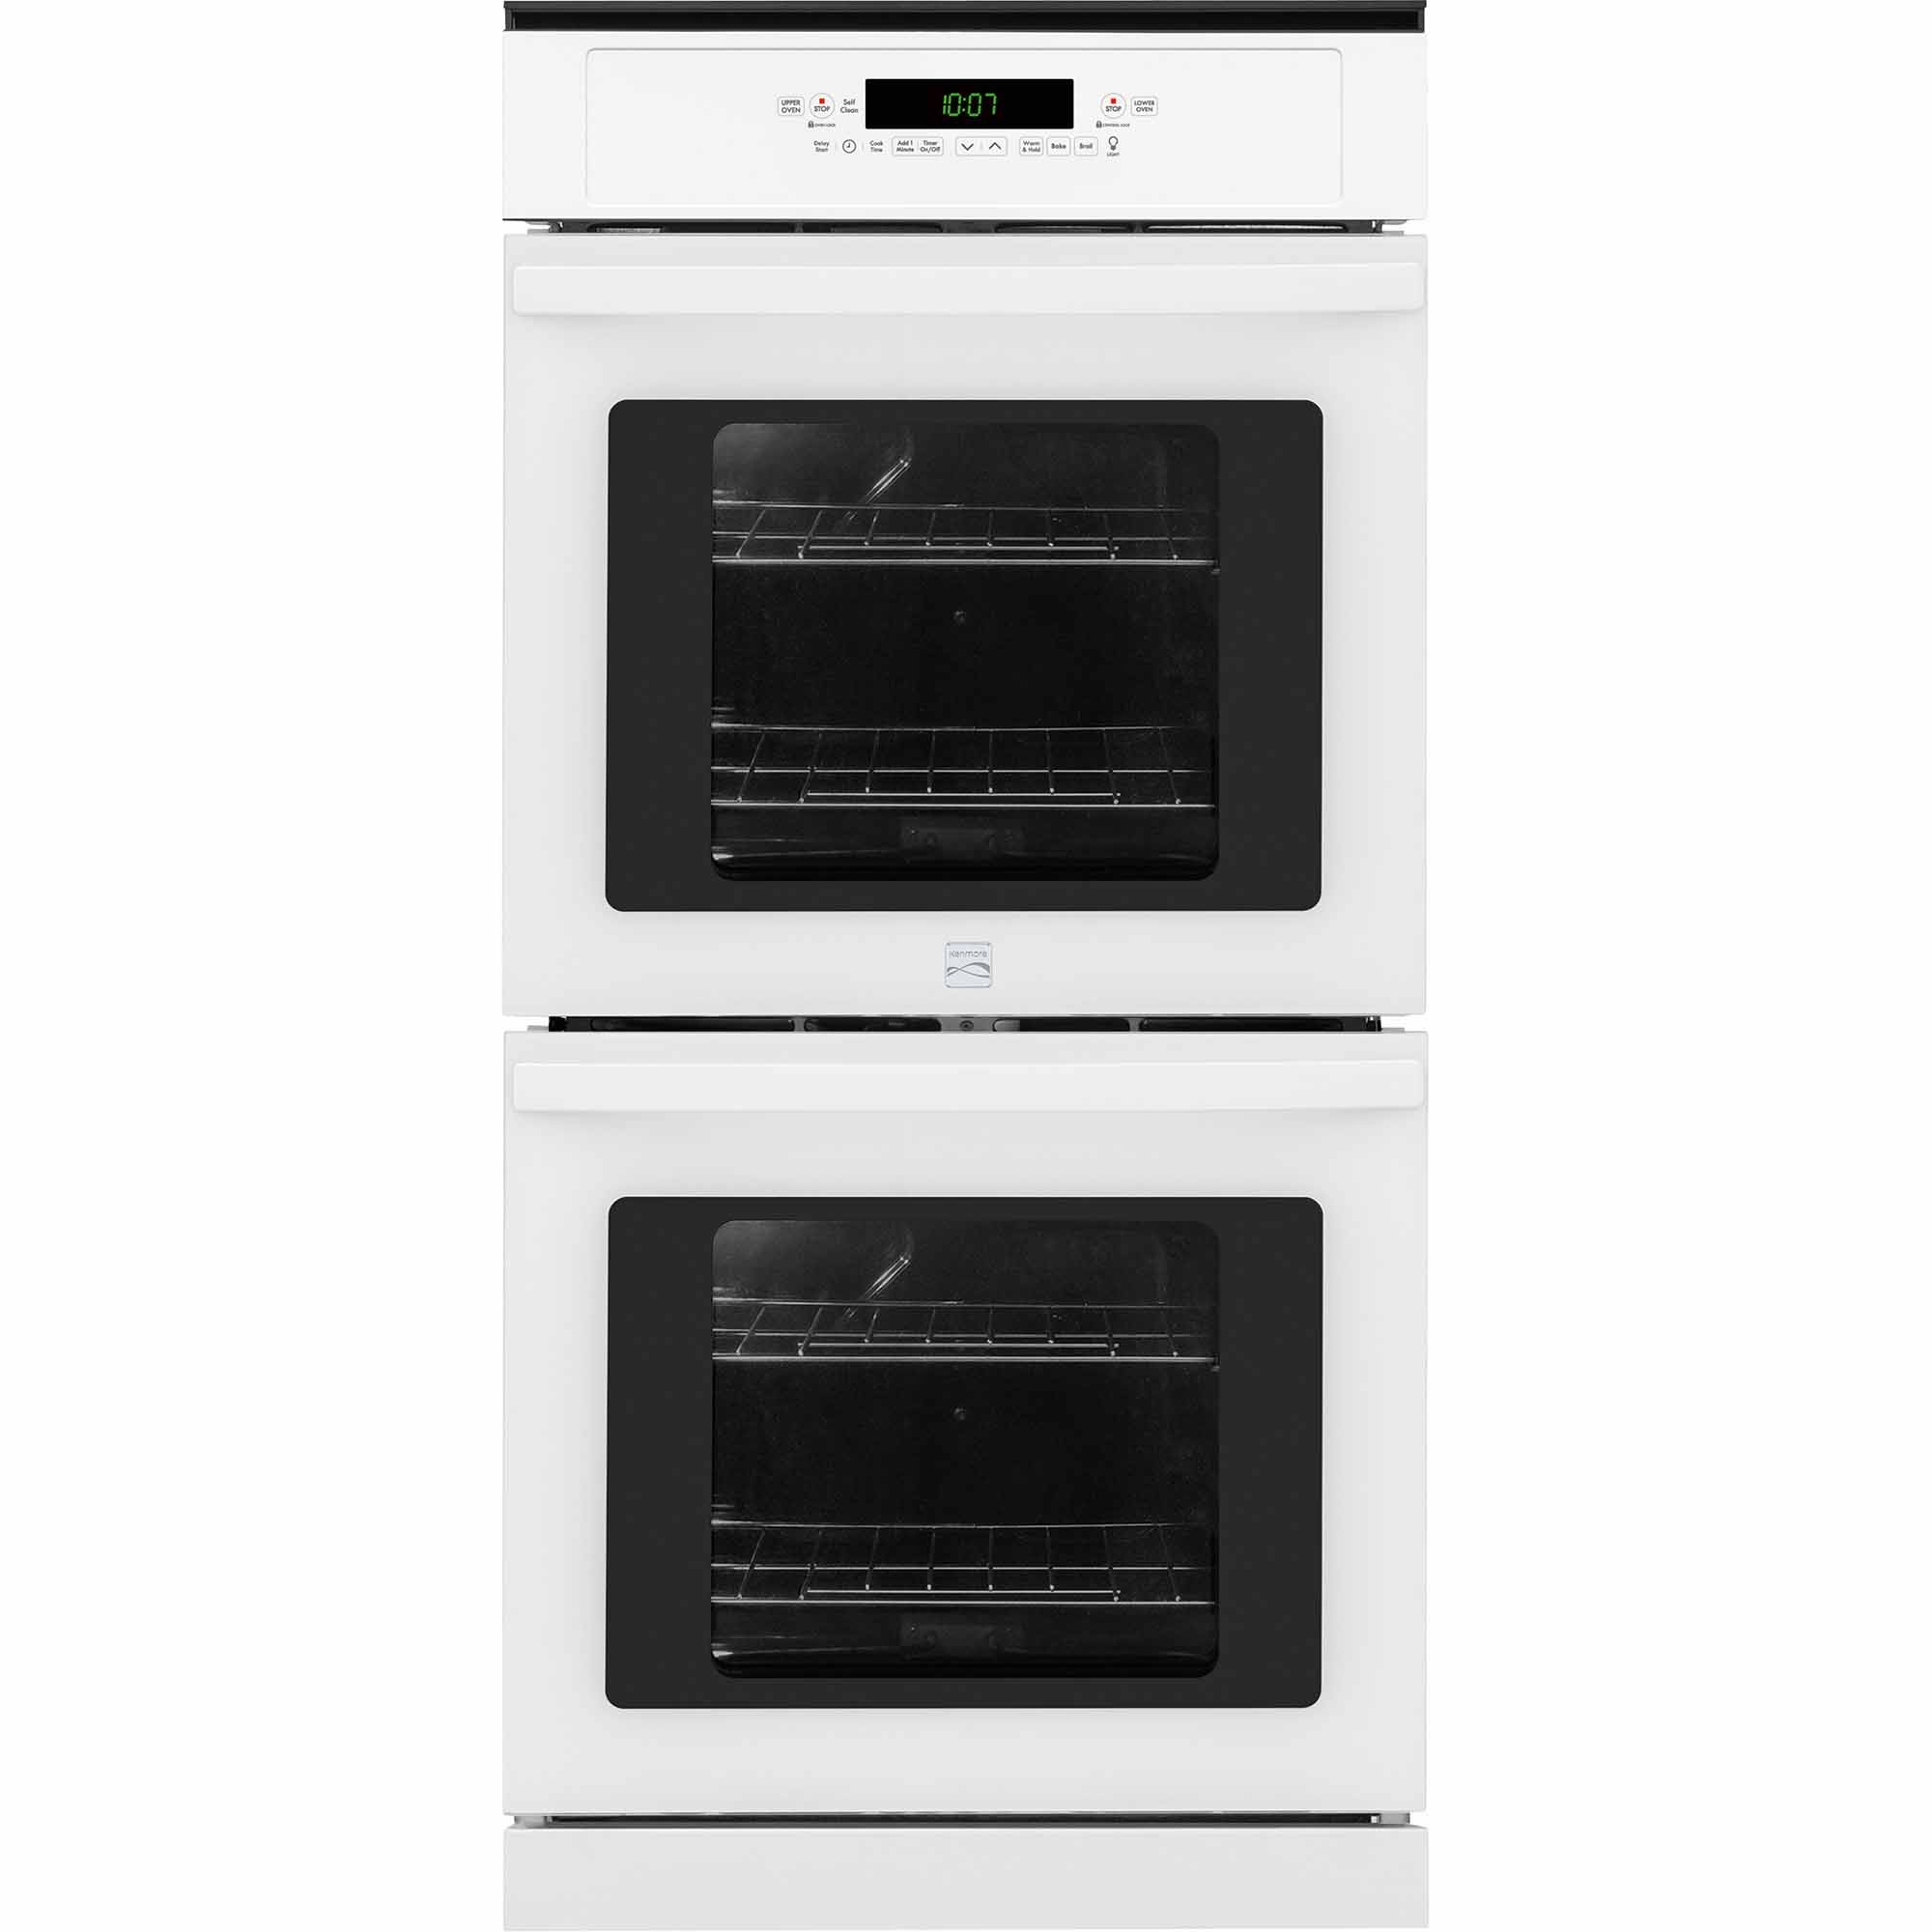 40252-24-Manual-Clean-Electric-Double-Wall-Oven-White